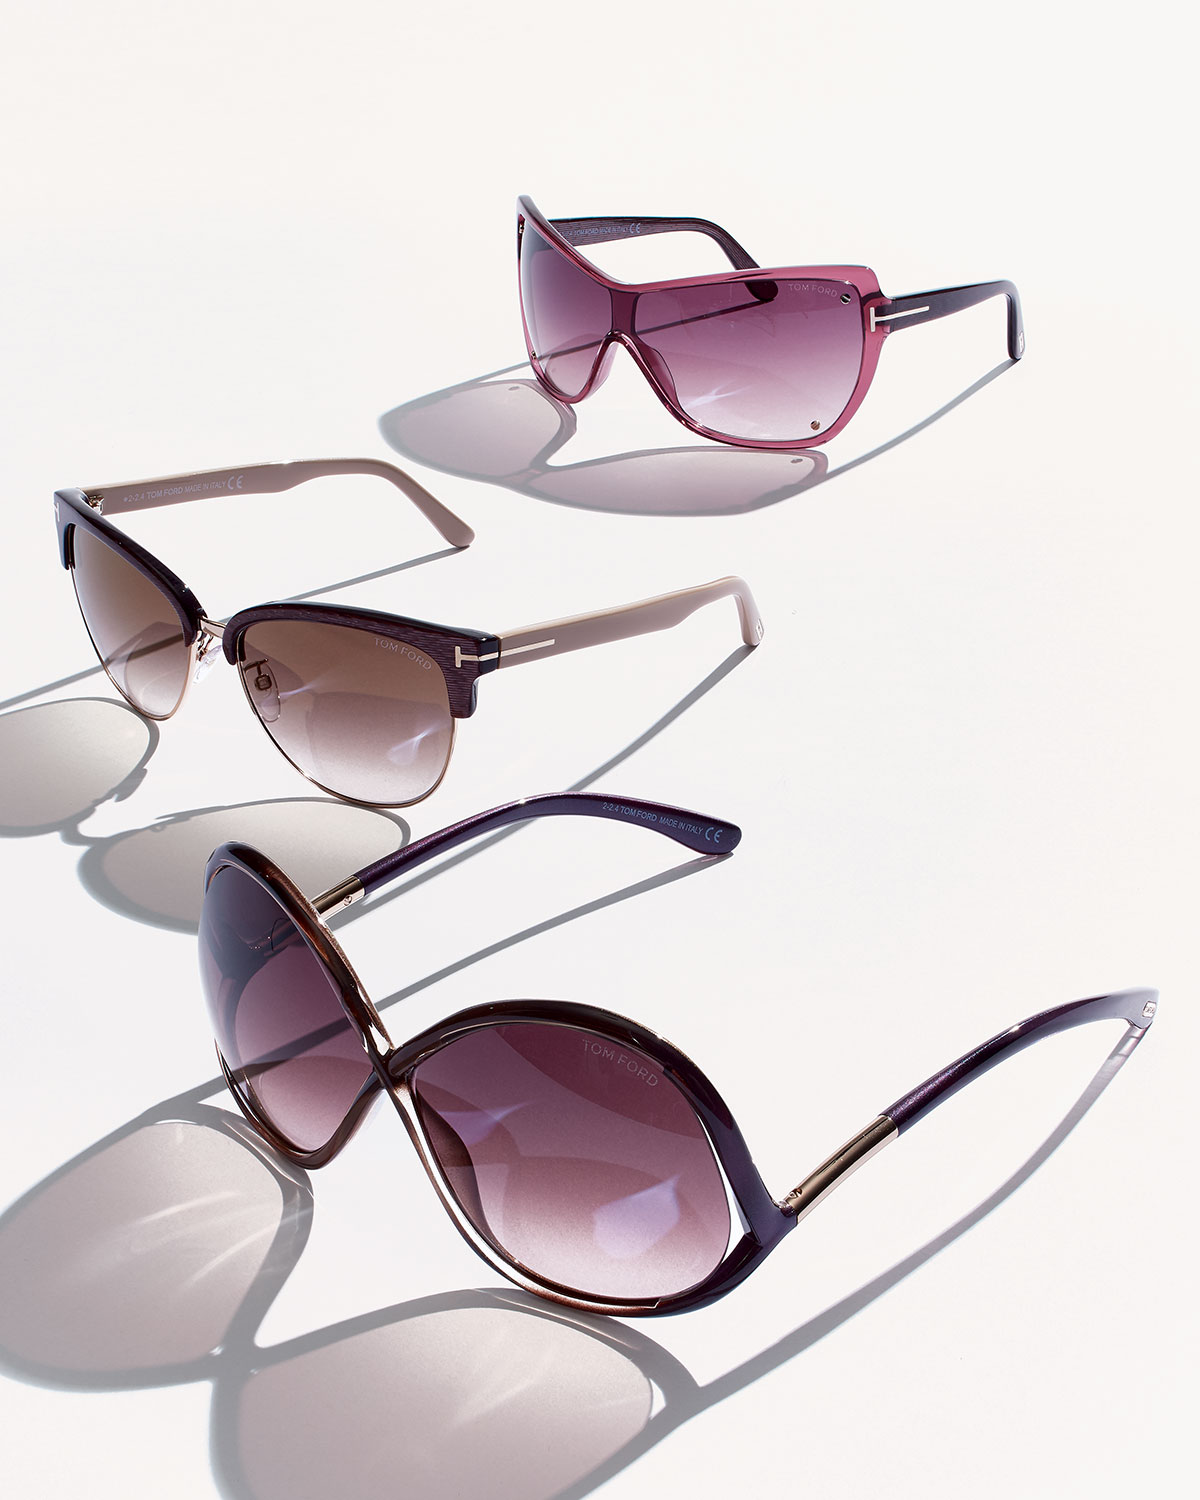 Sunglasses Featuring Tom Ford